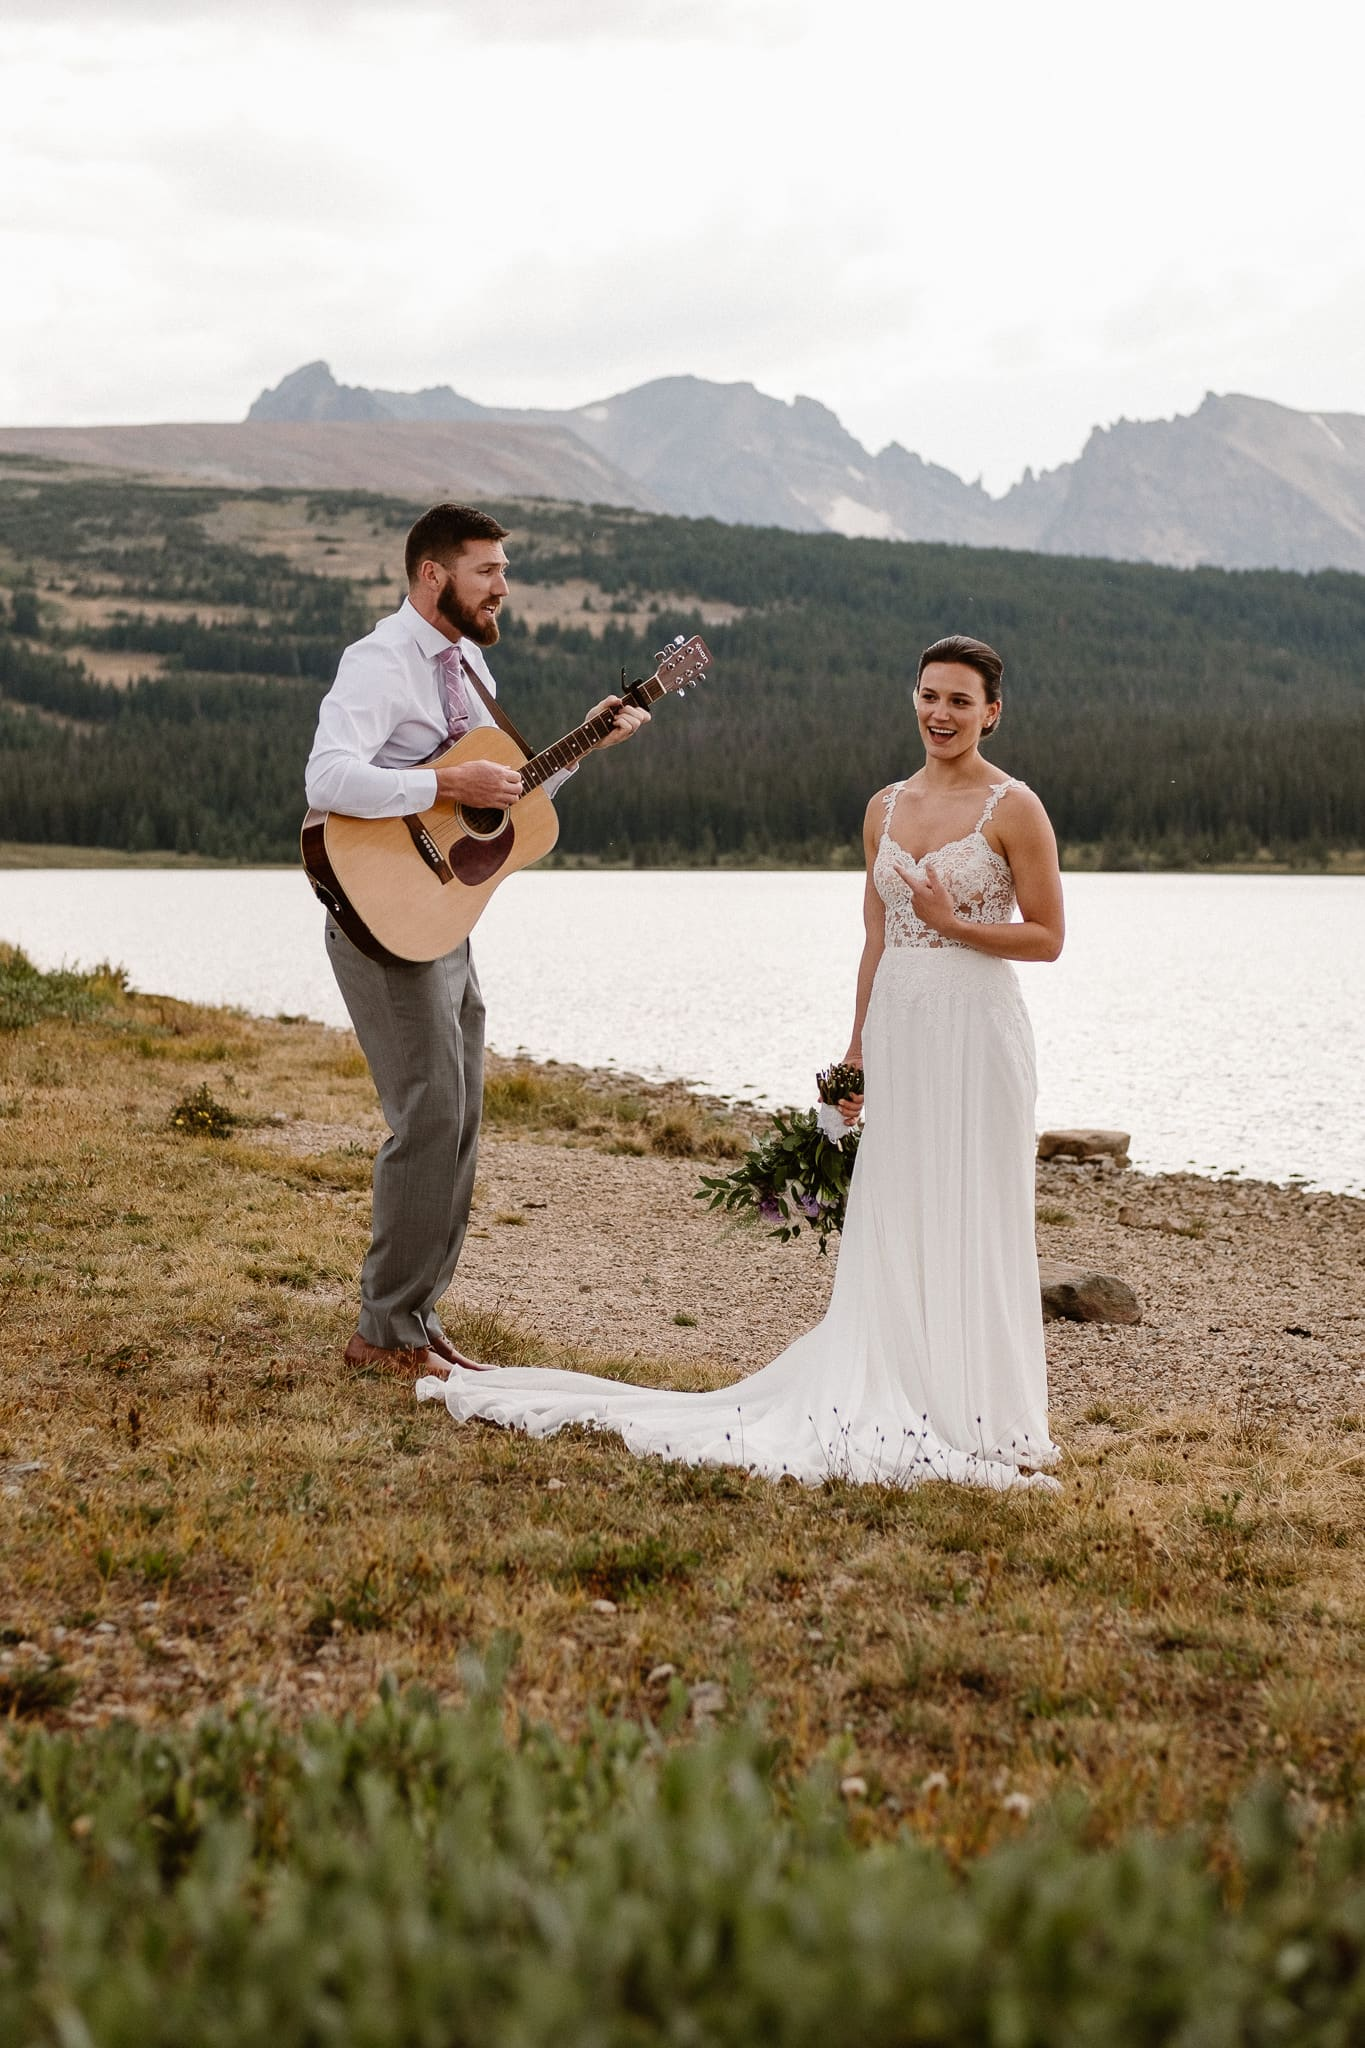 Colorado mountain elopement photographer, alpine lake adventure wedding, Boulder wedding photographer, groom playing guitar and singing to bride